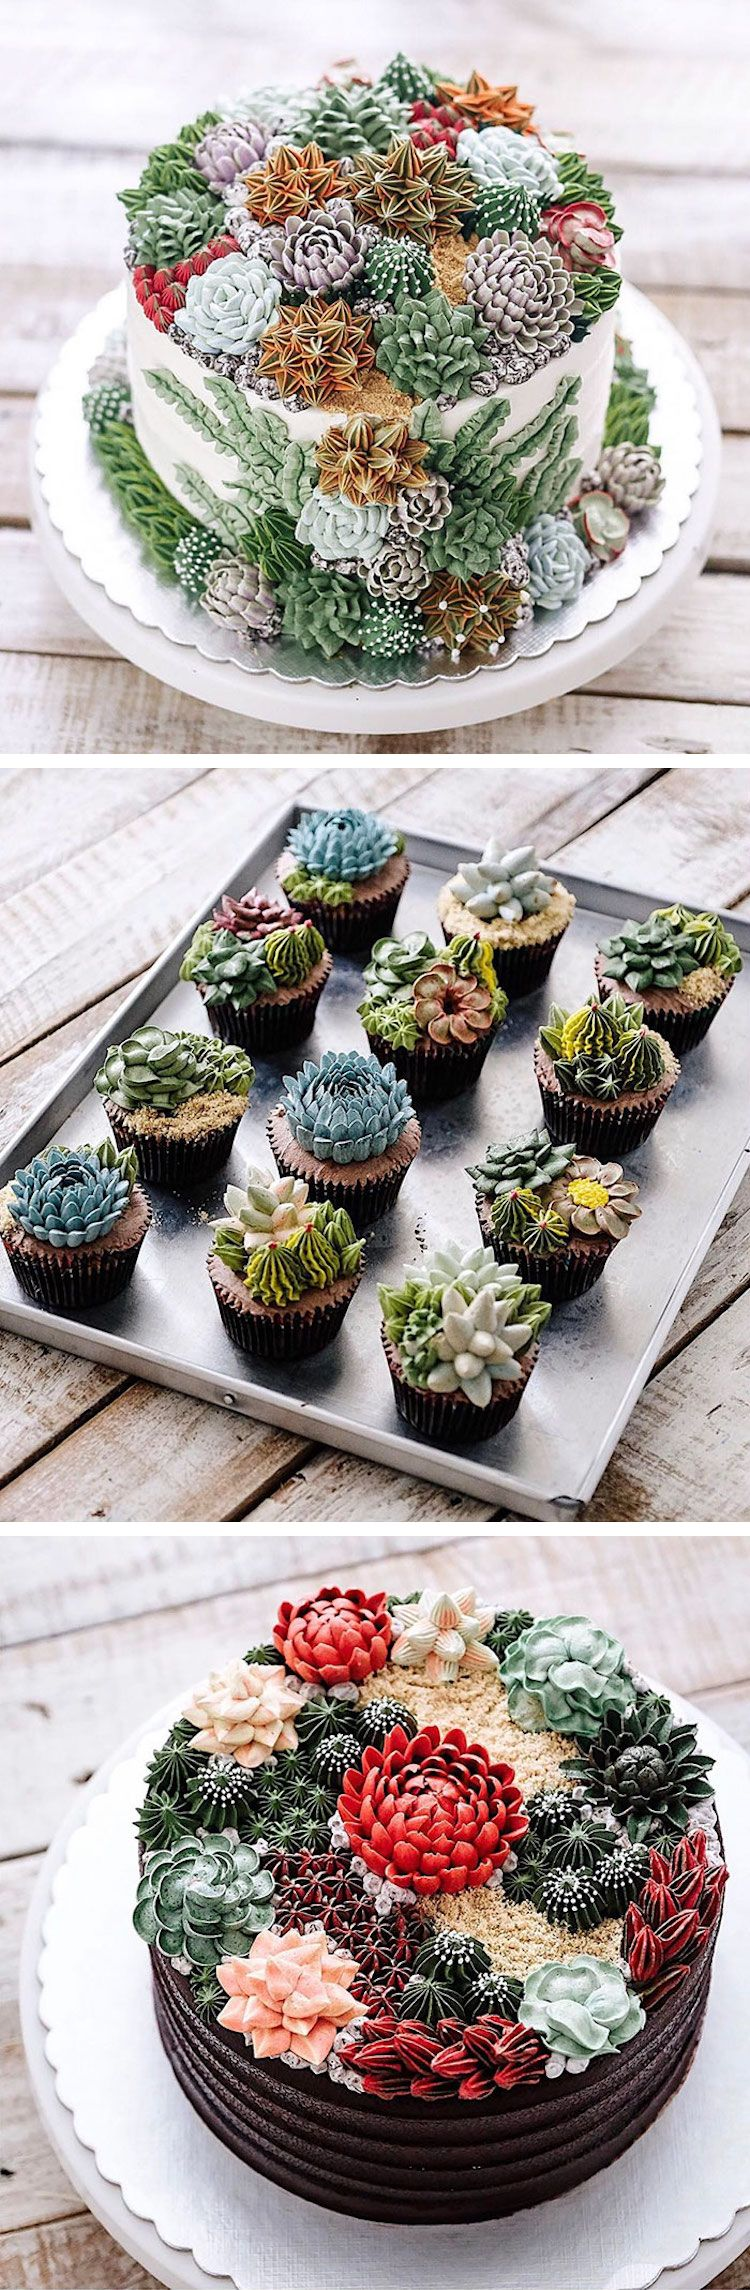 Lifelike 'Succulent Cakes' Turn Prickly Plants into Delicious Desserts #cakedecorating